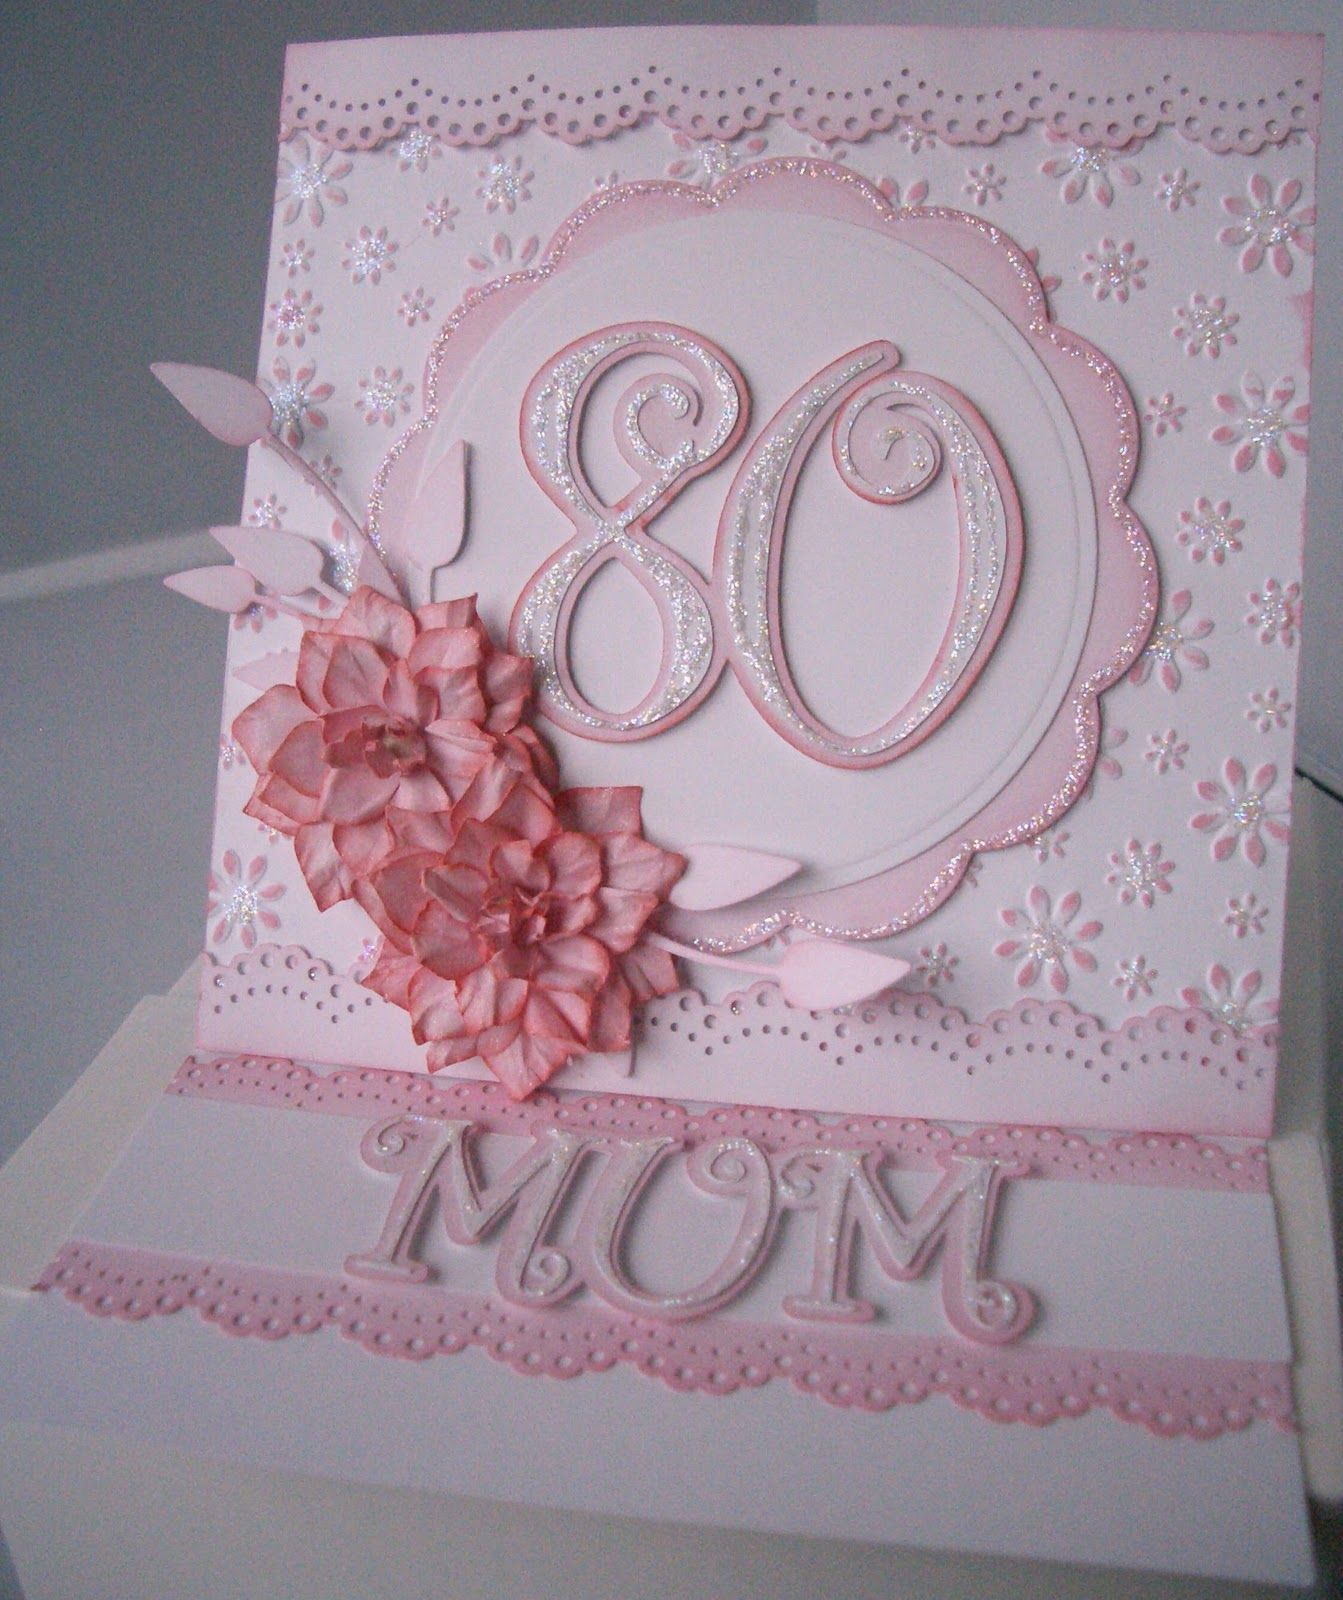 Julies Inkspot 80th Birthday Card Card inspiration – 80th Birthday Cards for Mum